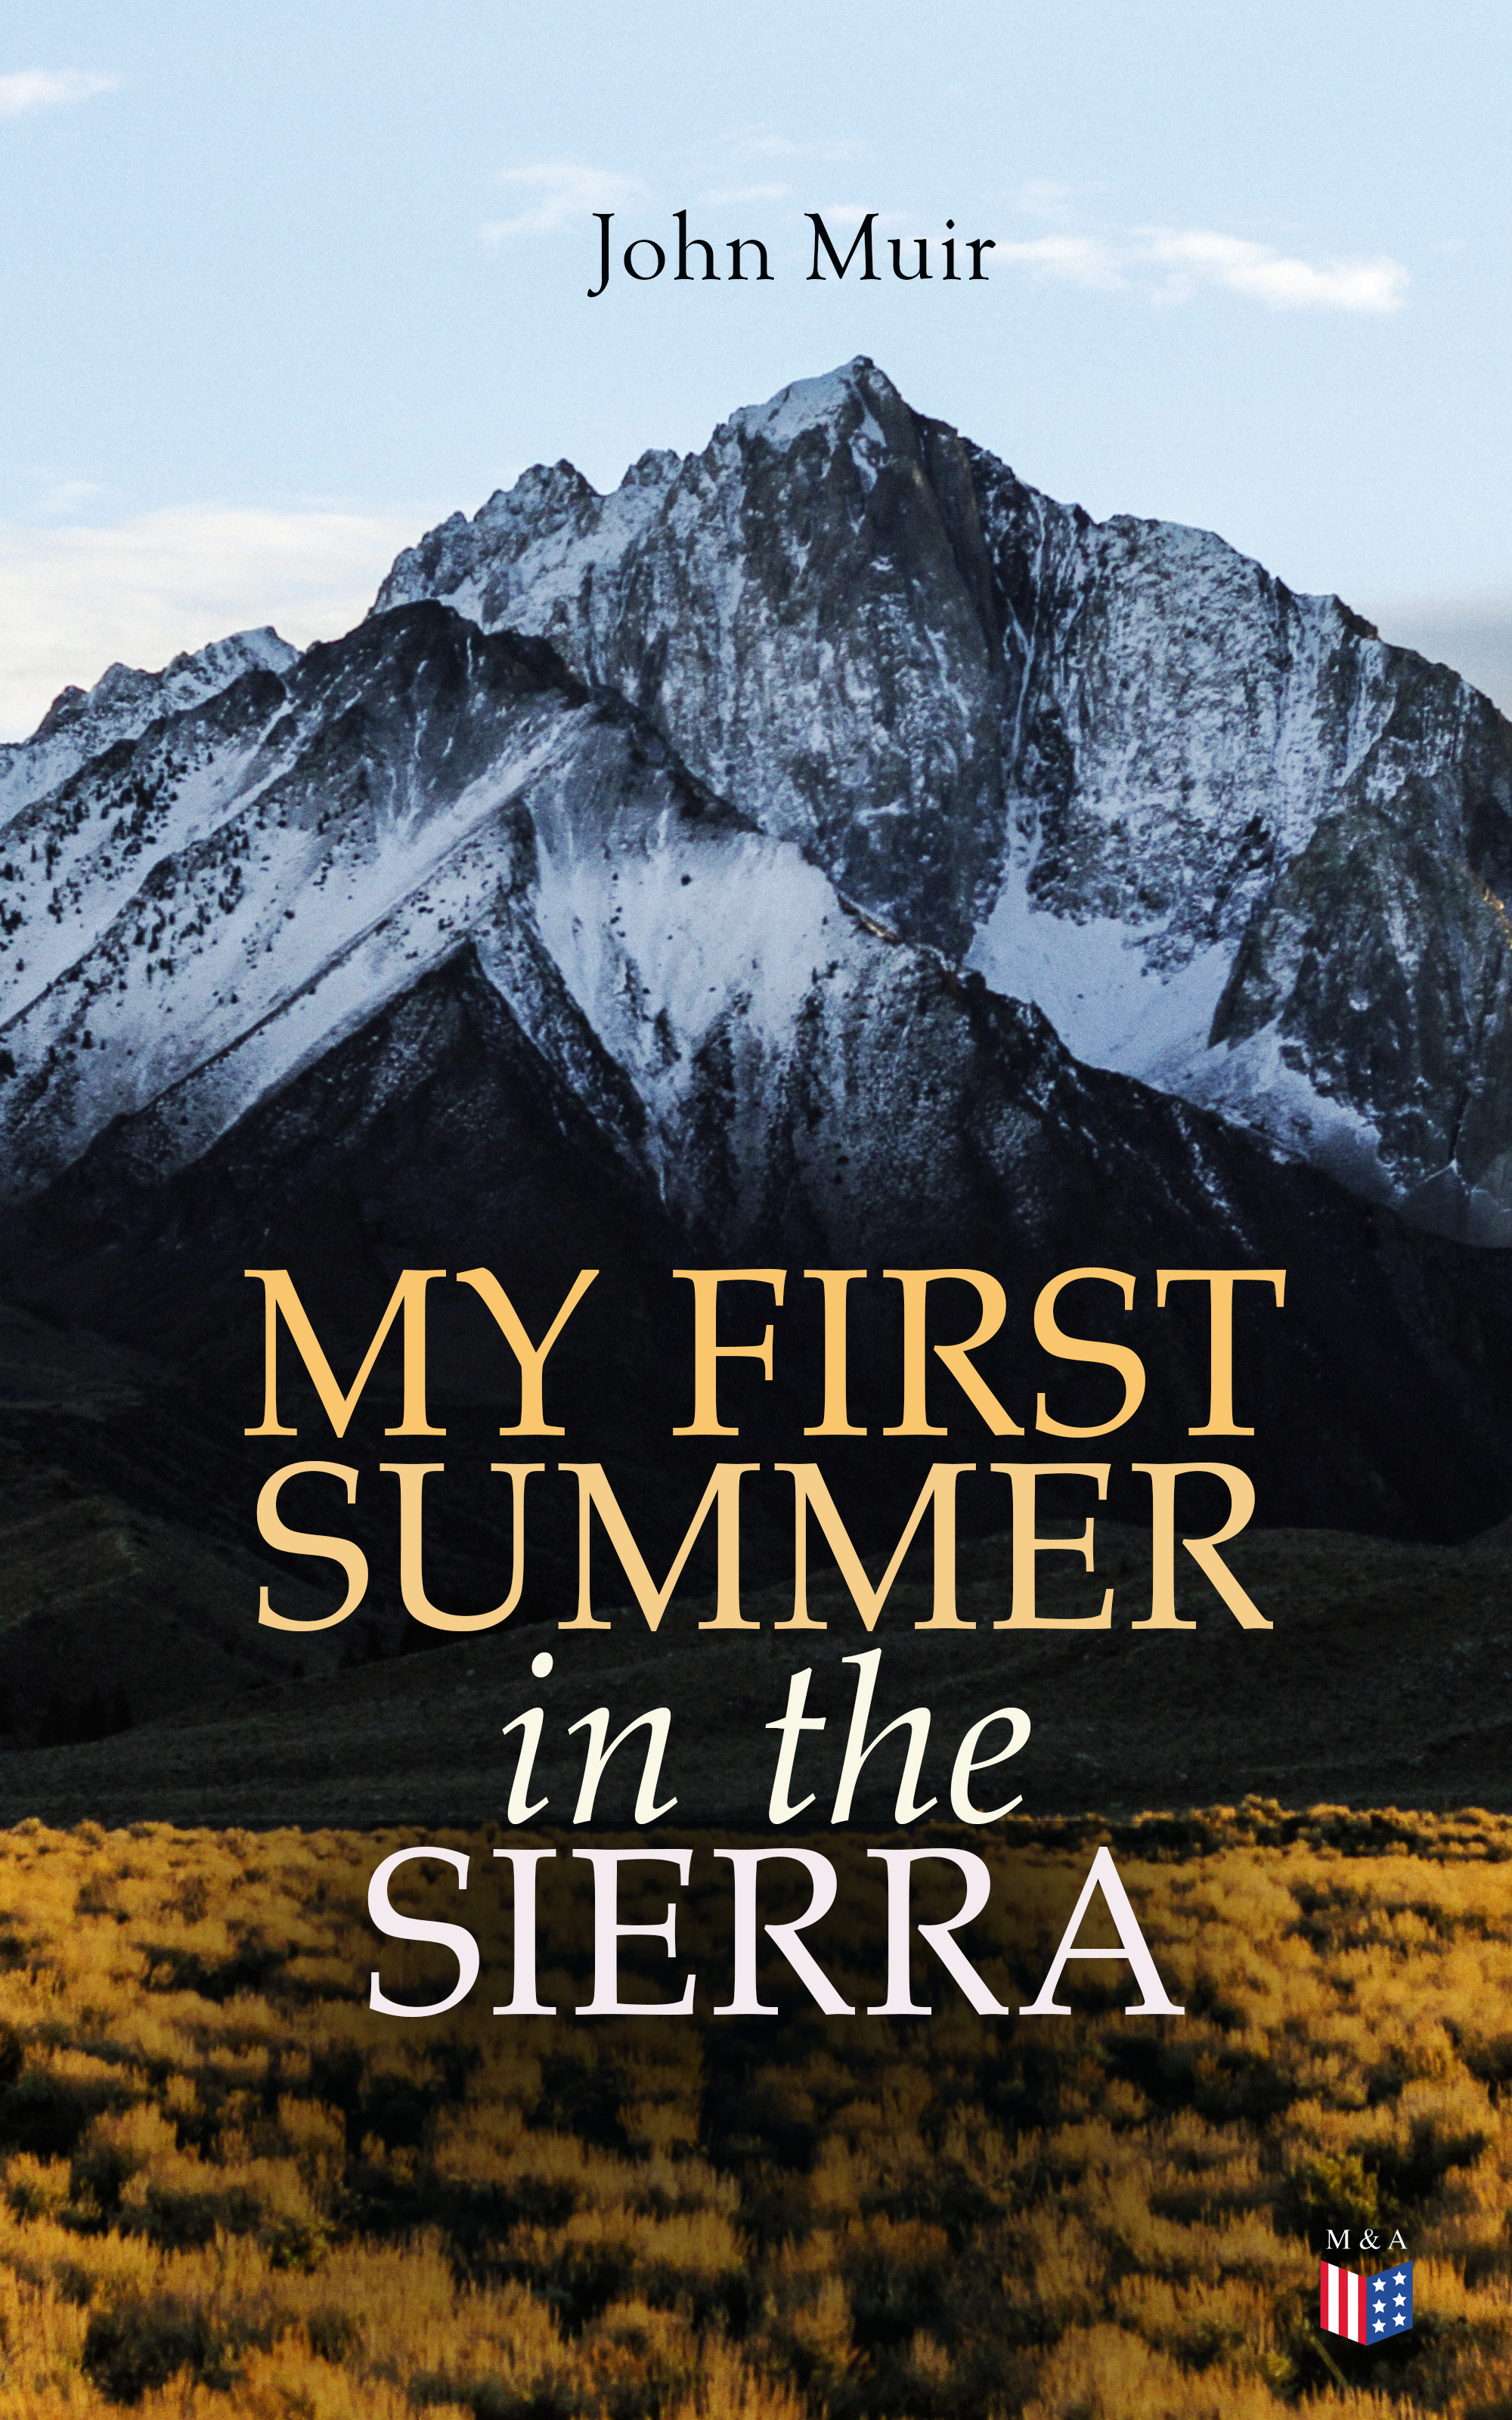 John Muir My First Summer in the Sierra (Illustrated Edition)